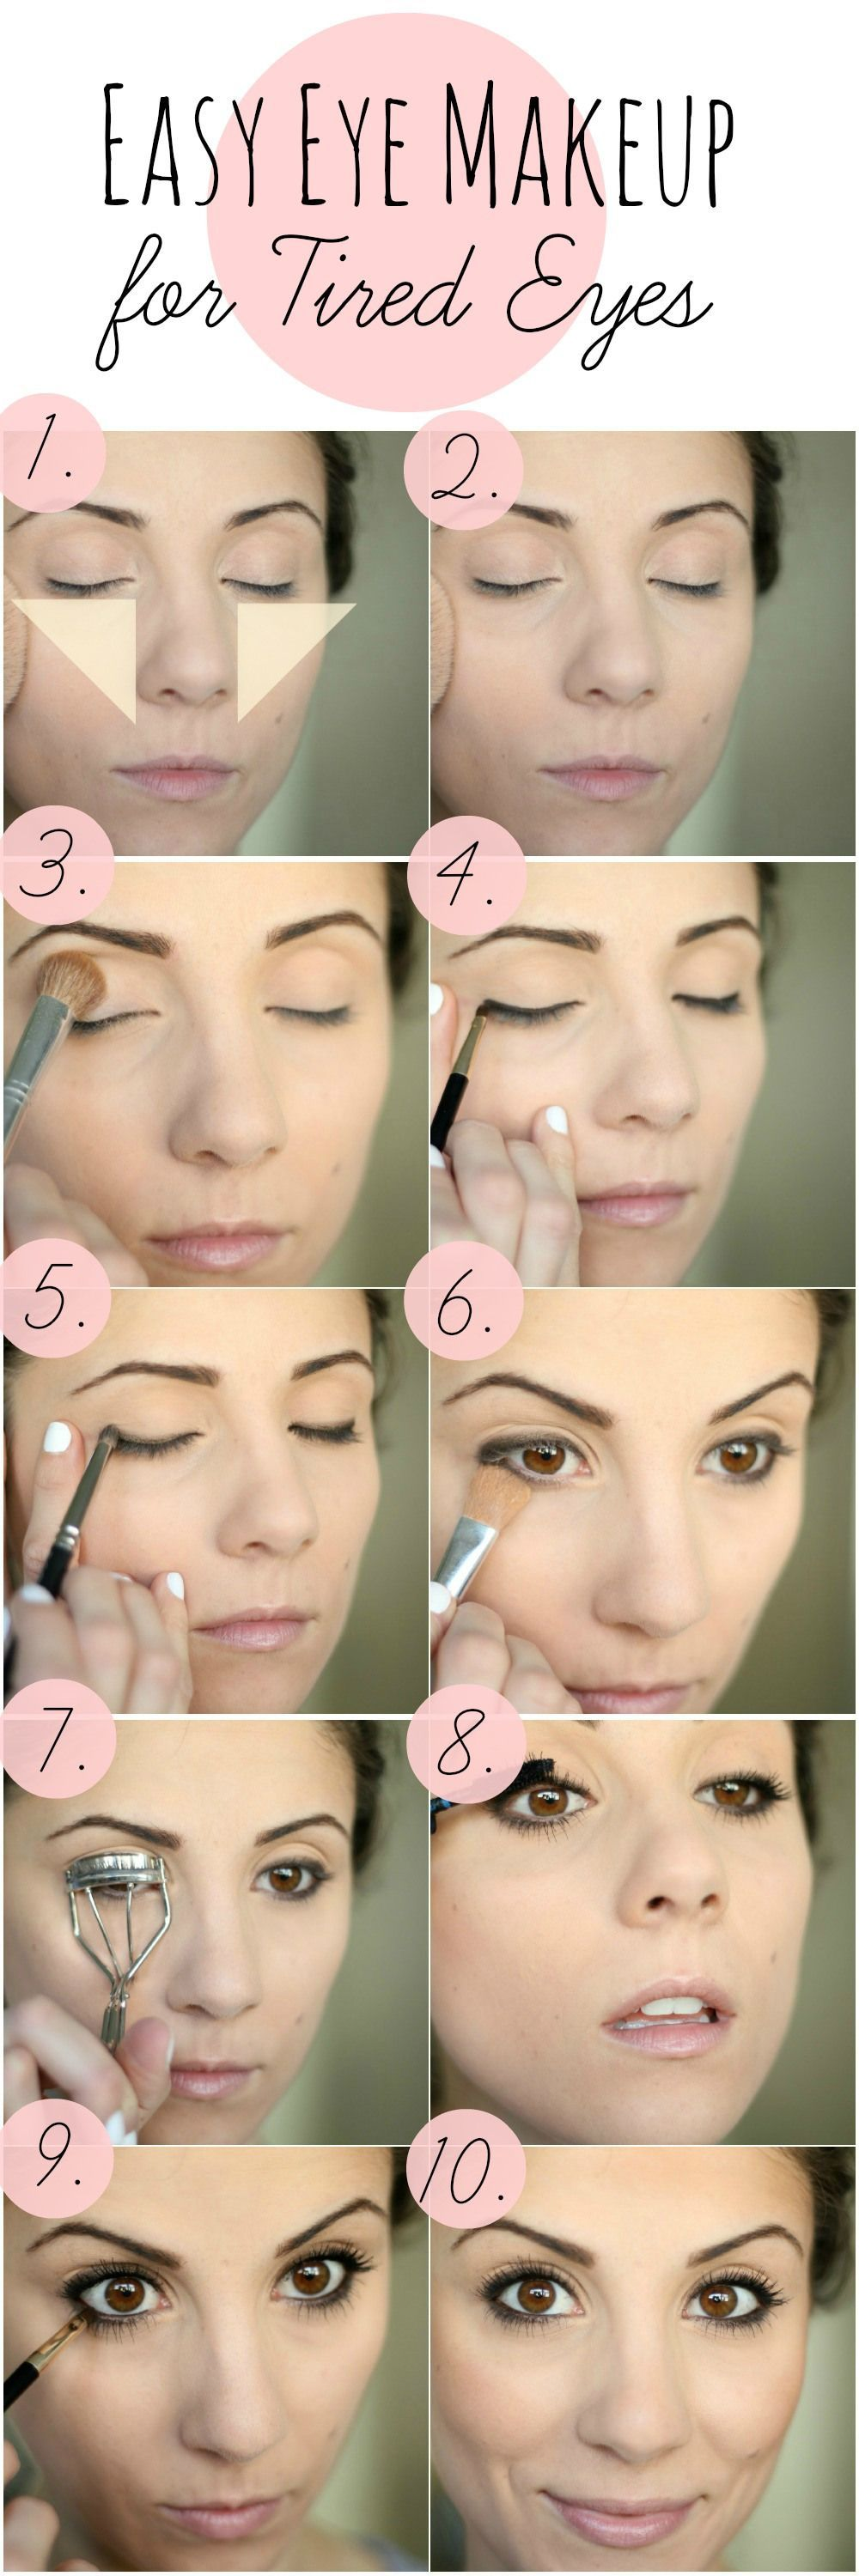 Easy Eye Makeup for Tired Eyes (With images) Techniki